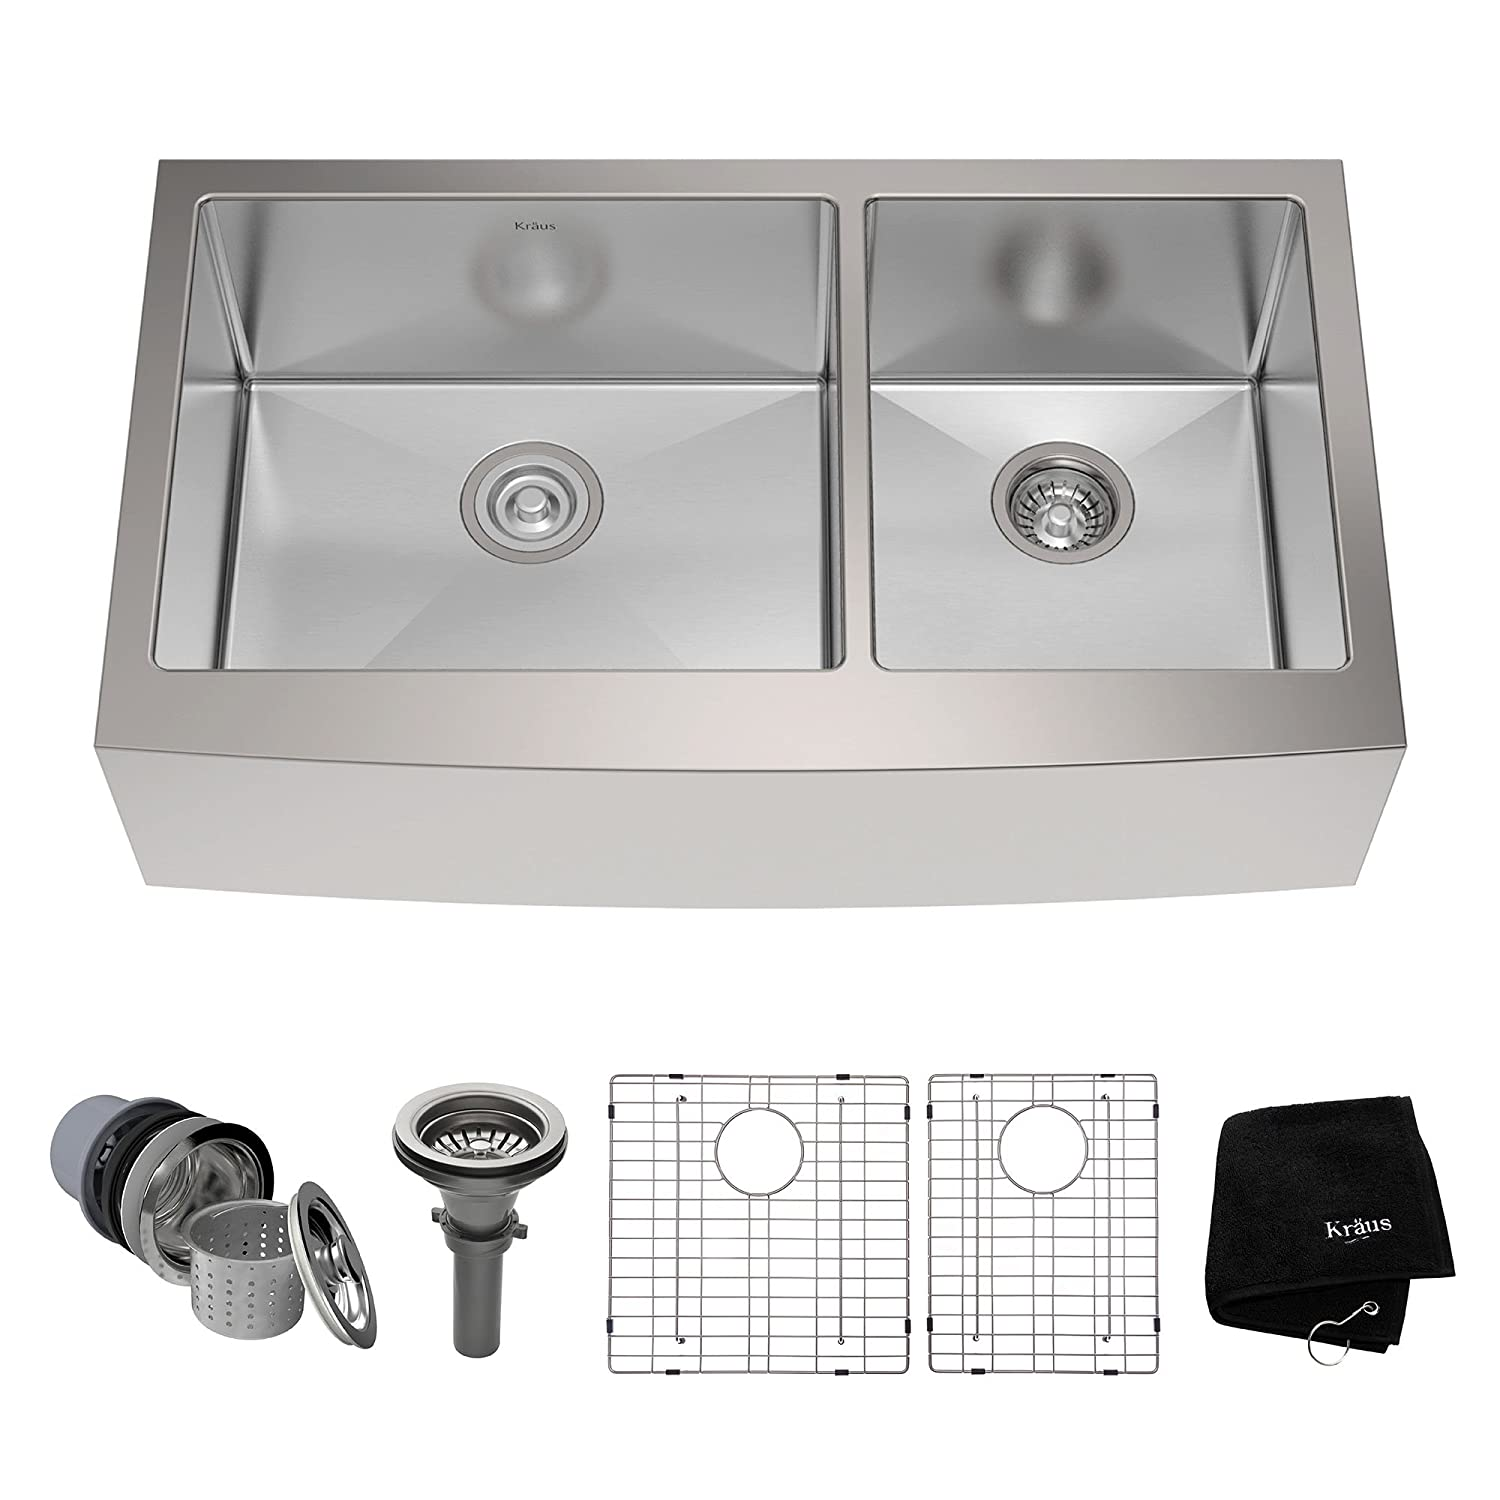 Best Stainless Steel Sinks 2018 (read this or you risk losing your ...